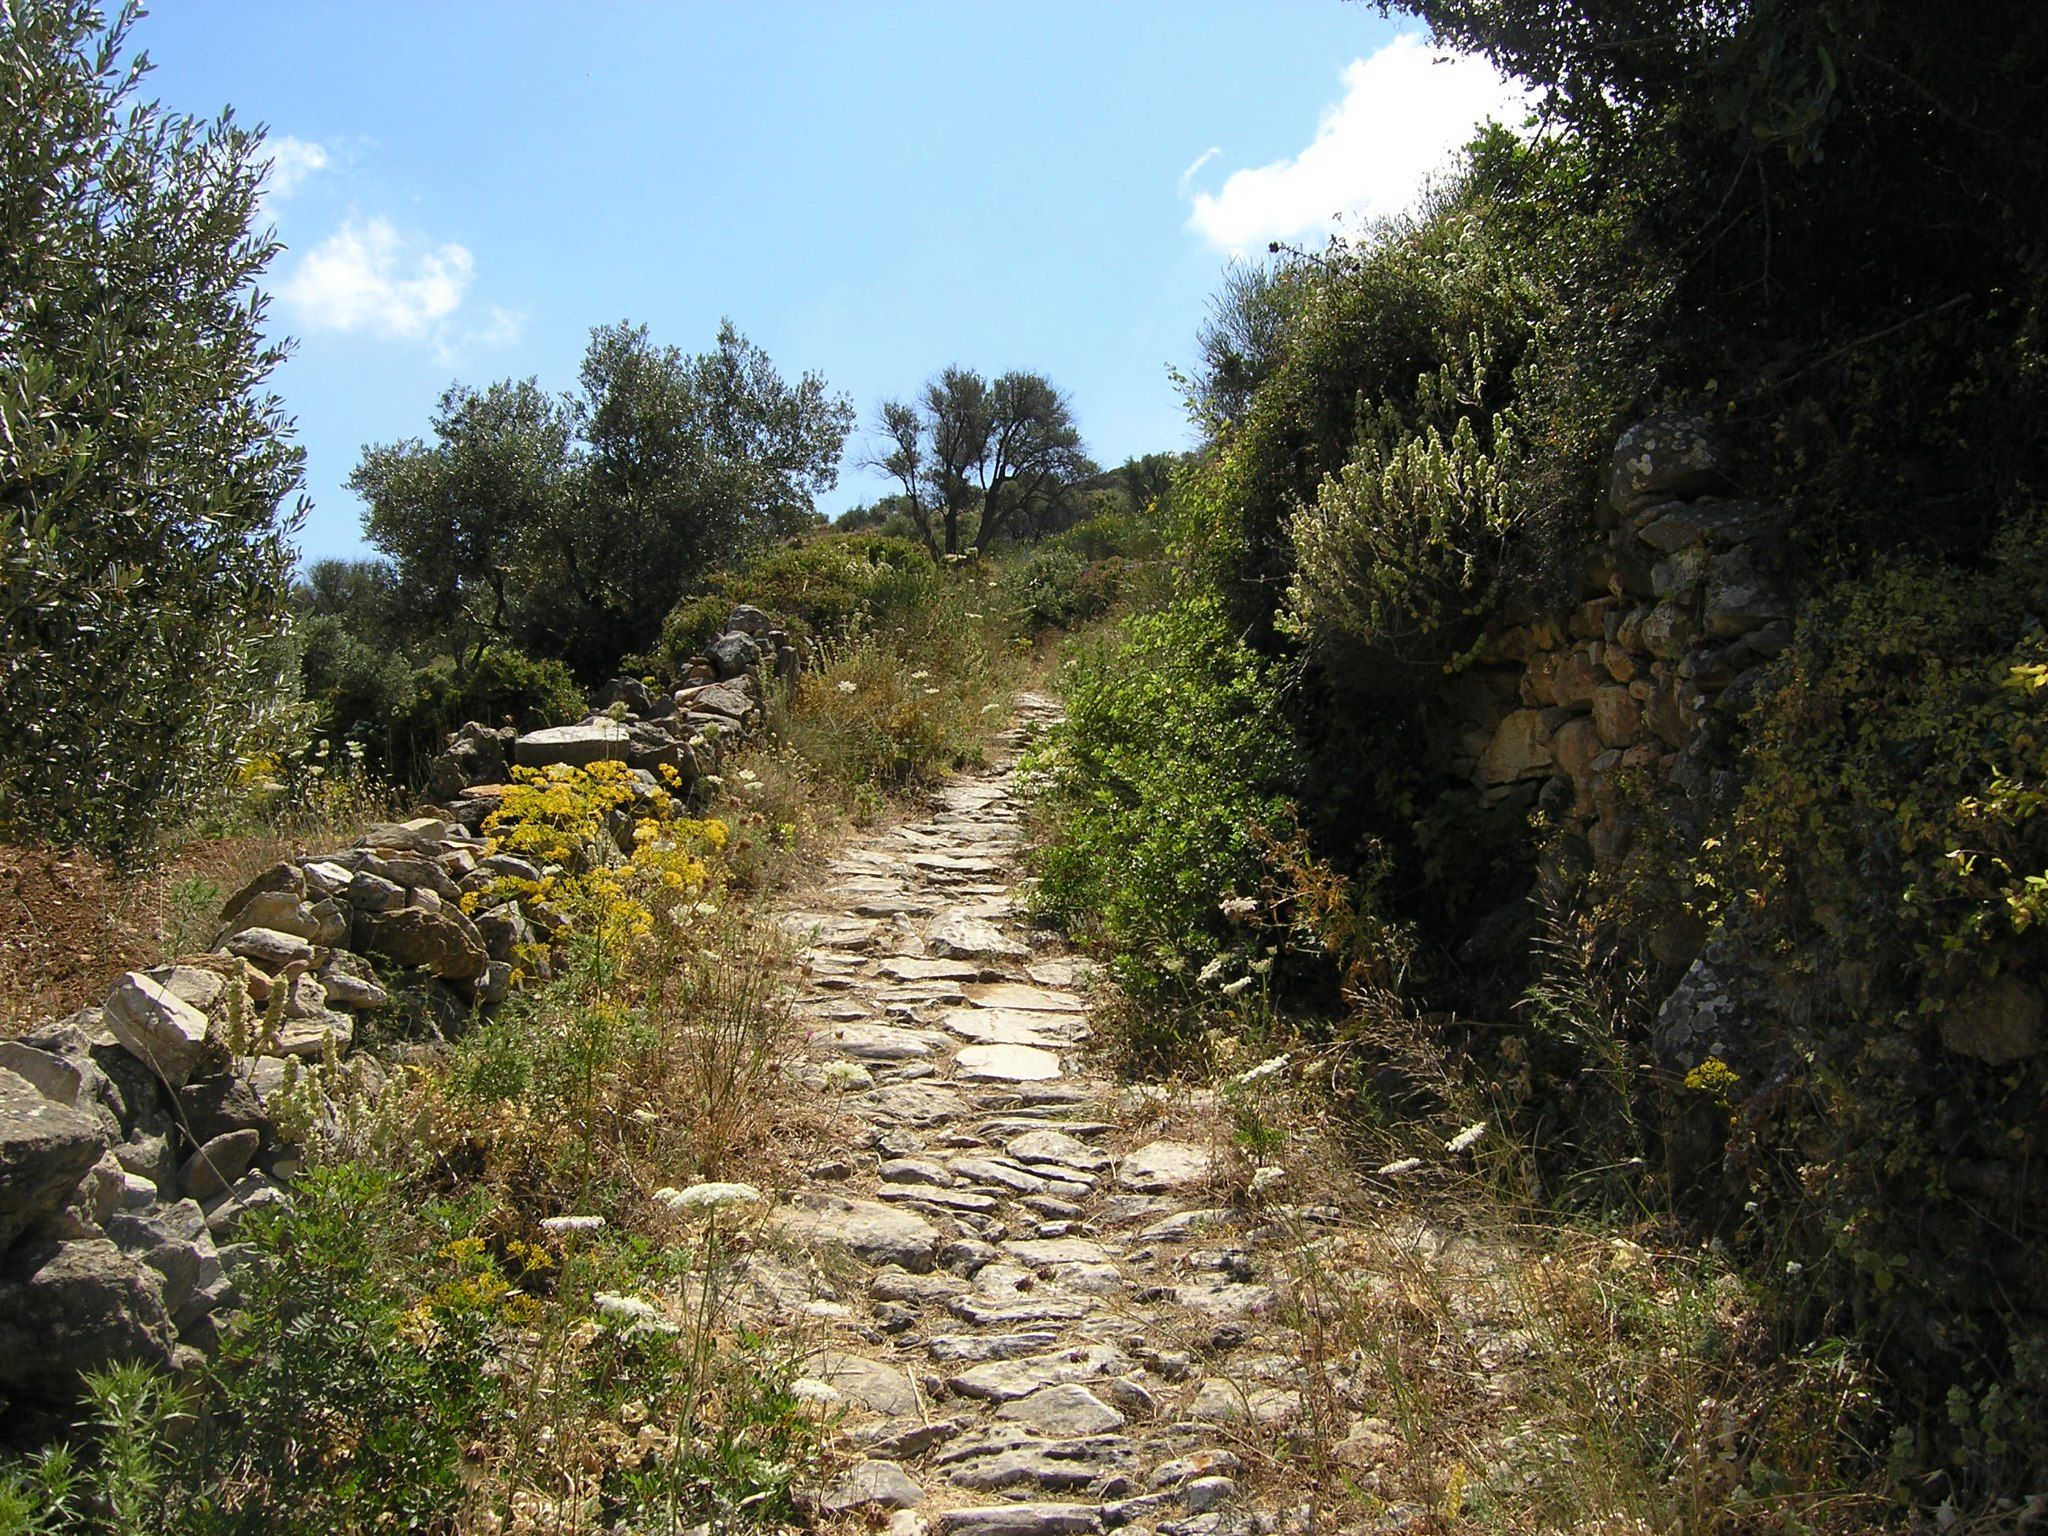 The Byzantine Walking Trail in Lefkes #Paros. Follow your way through the inspiring nature of the Cycladic mountains.